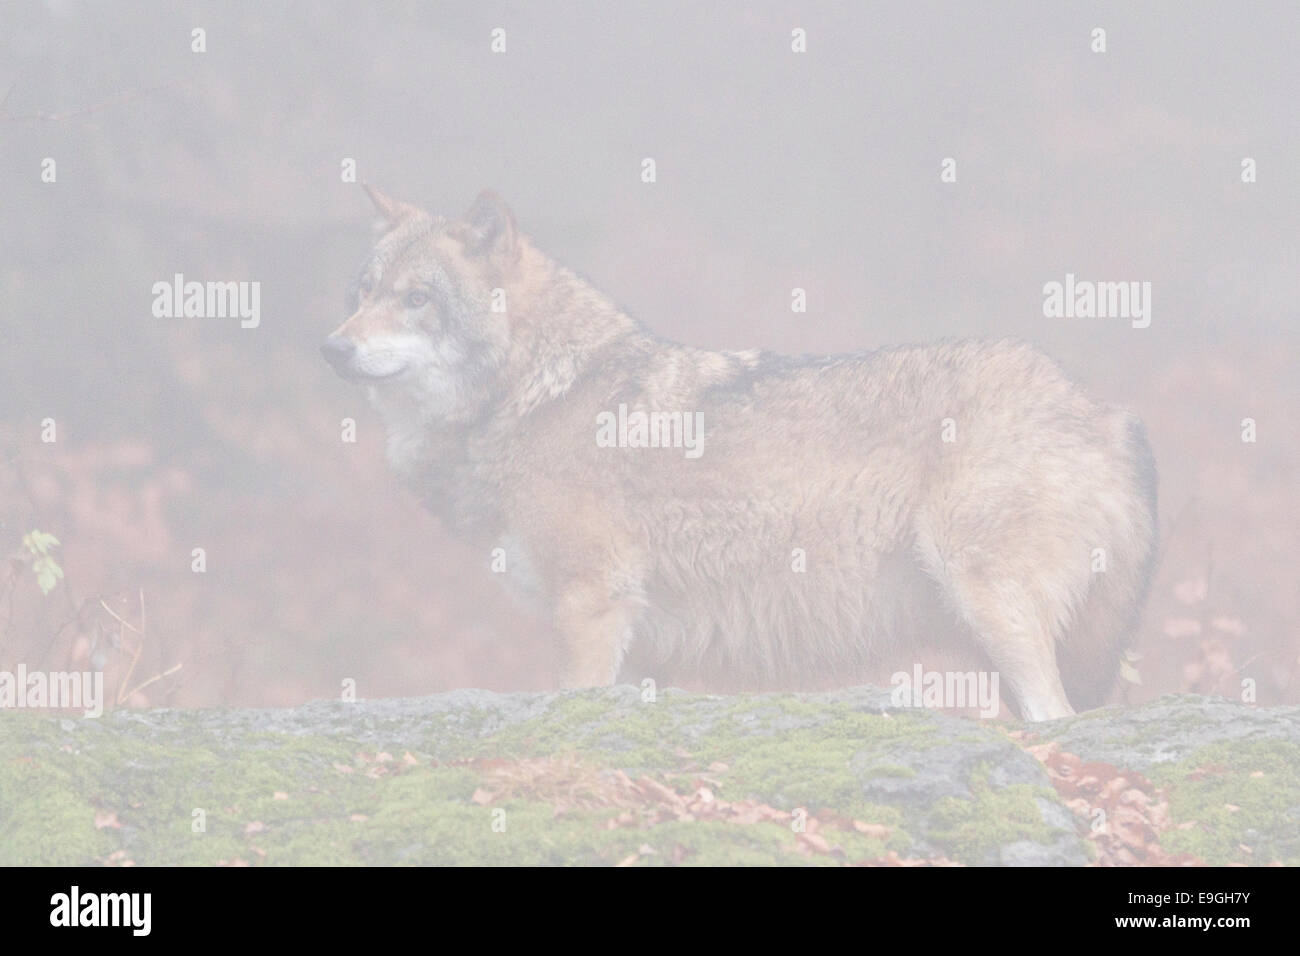 A captive male grey wolf stands on a rock in a misty forest, Bavarian Forest National Park, Germany Stock Photo